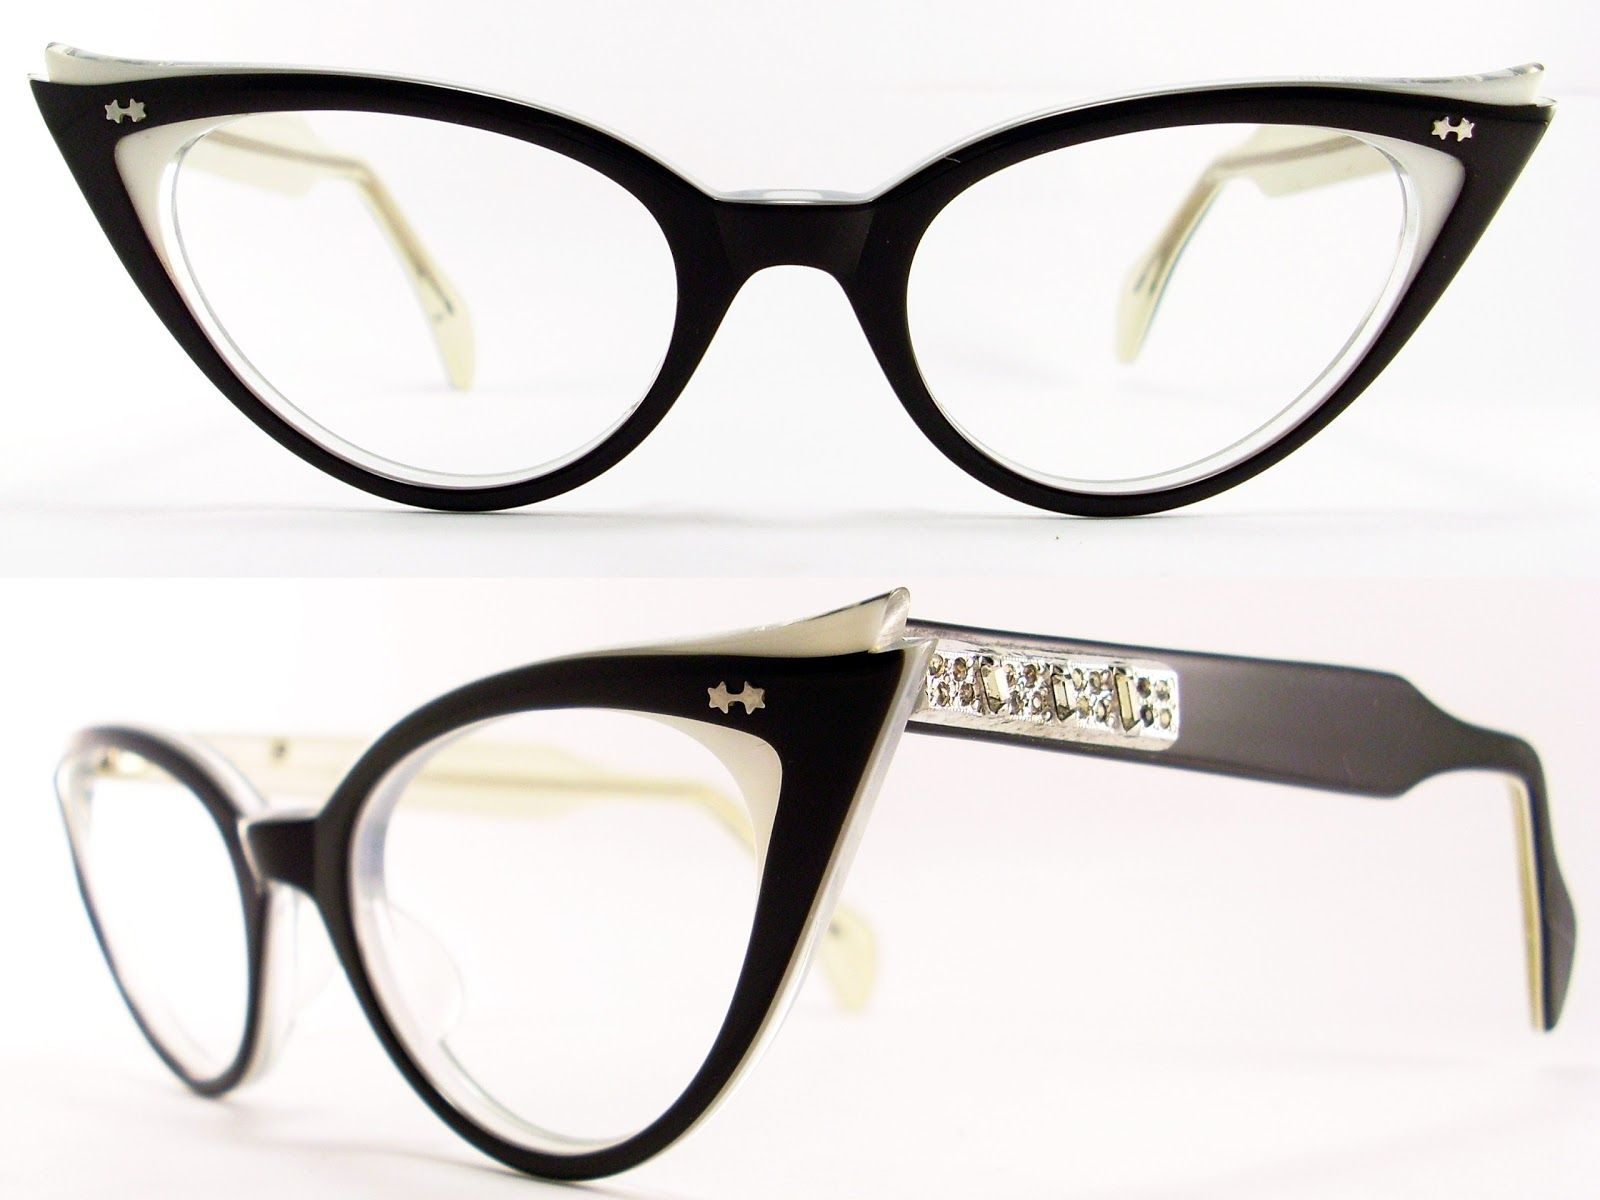 29ad80099de VINTAGE CAT EYE GLASSES FRAME IN VERY GOOD VINTAGE CONDITION SIDE TO SIDE 5  1 2